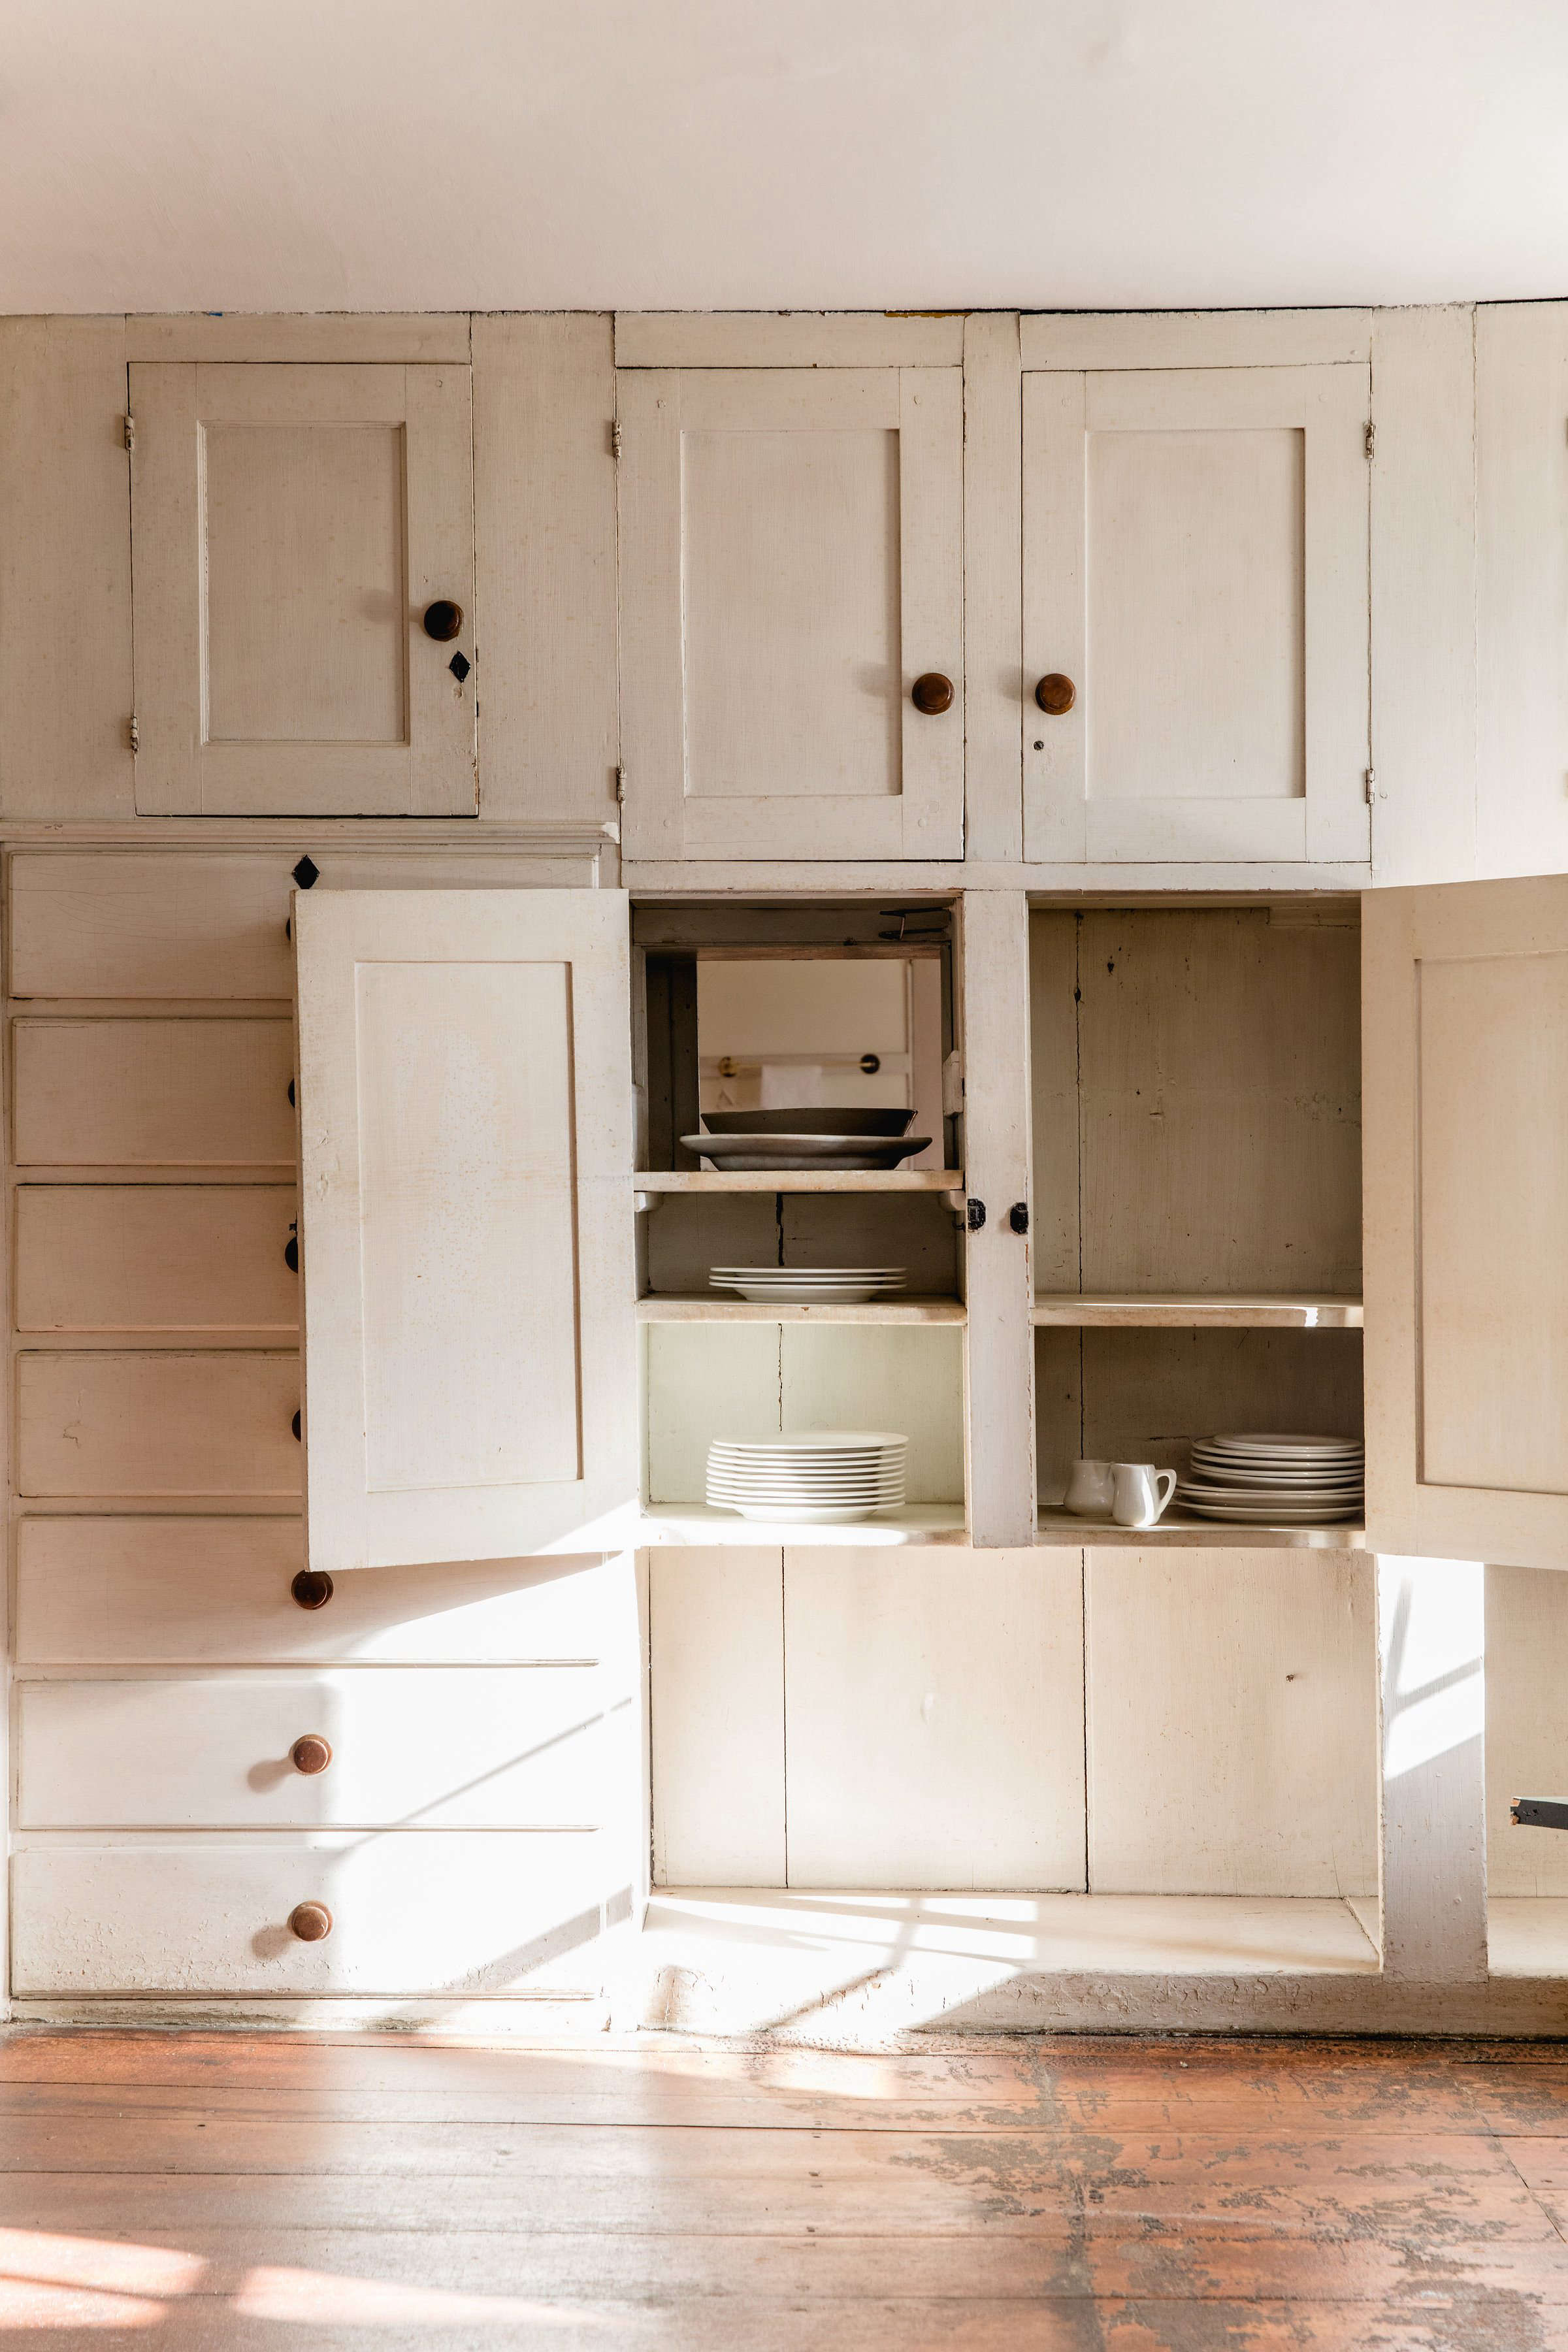 Cabinetry at Canterbury Shaker Village, Photo by Erin Little